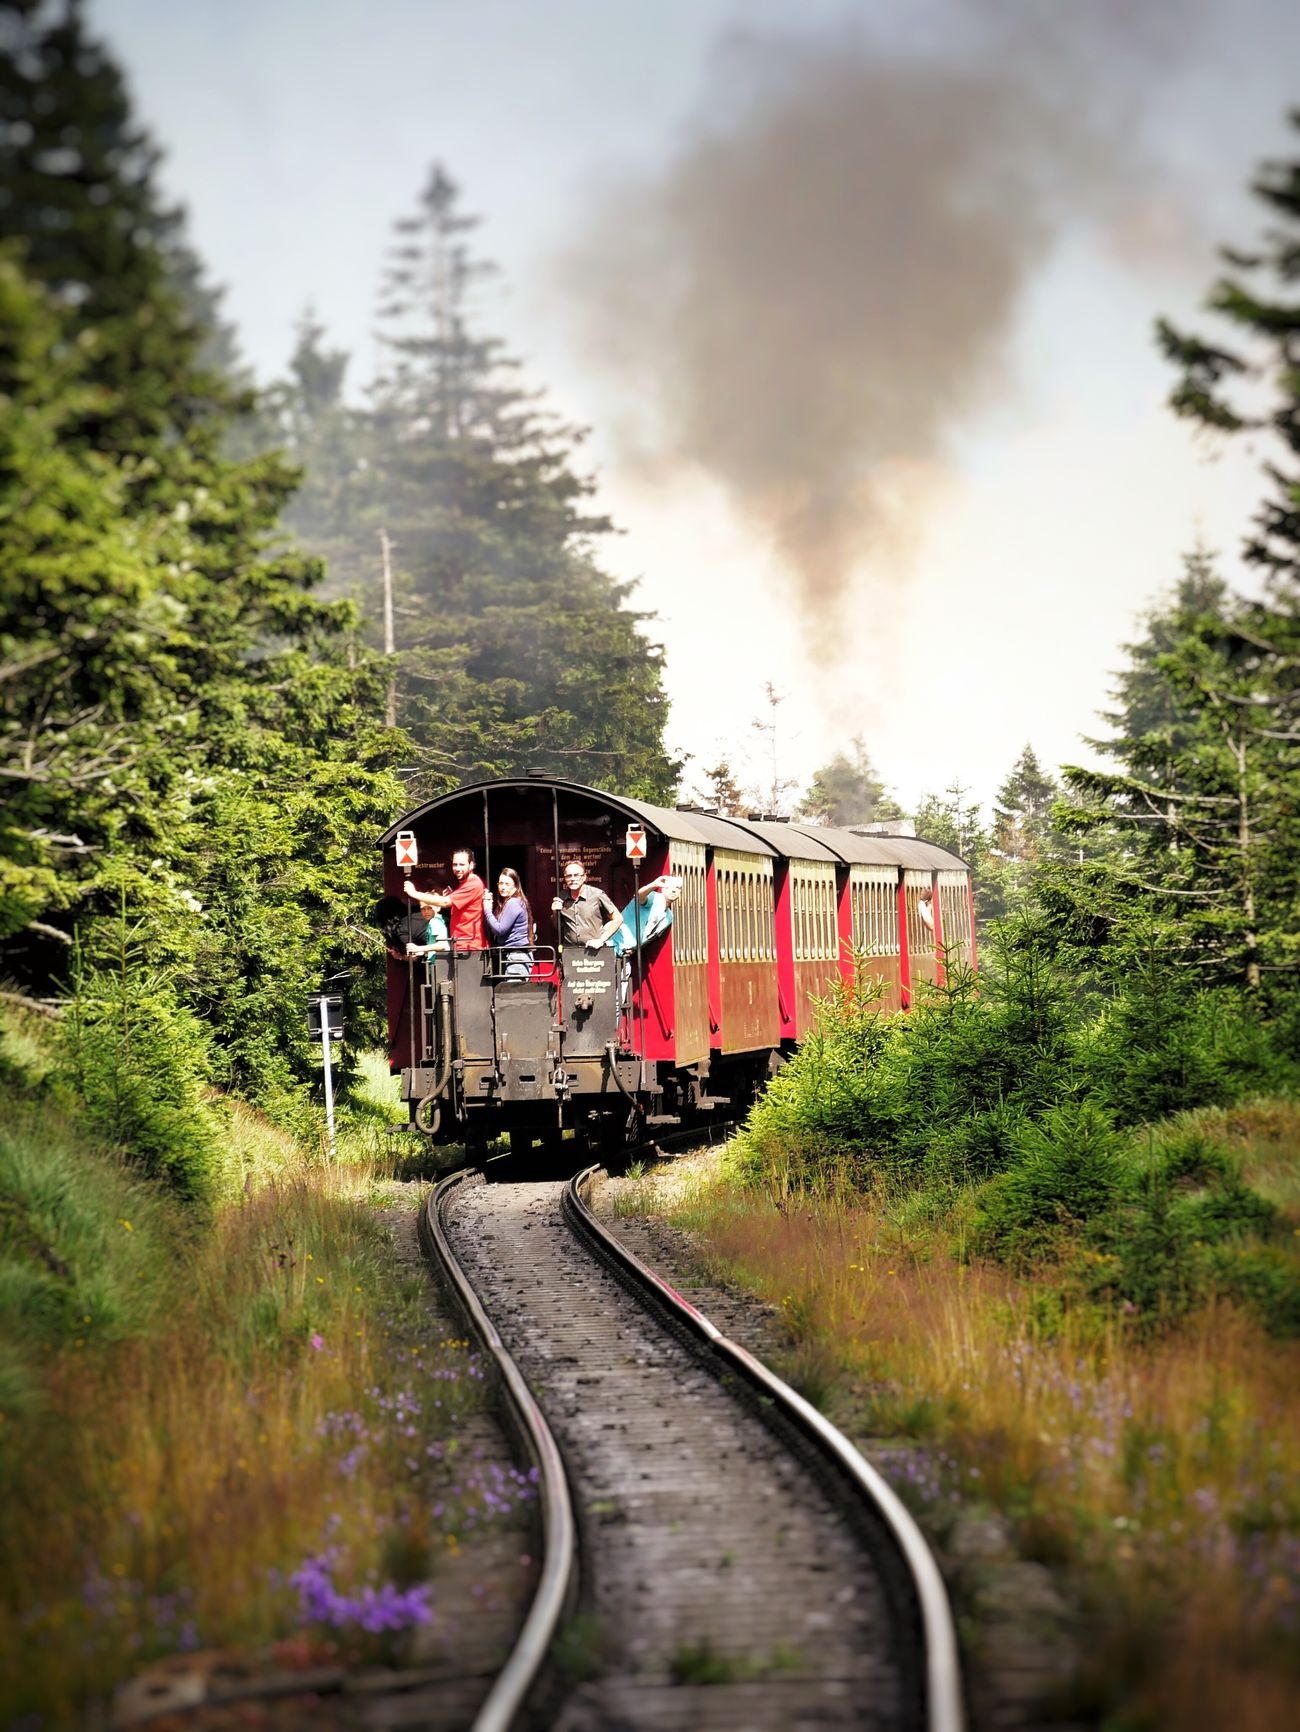 Passengers of Brockenbahn Harz Germany Passenger Tourist Tourists Brocken Steamtrain Summer Mountain Mountains Railway Railway Track Traveling Travel Showcase July Global Photographers Alliance Global Photographer Works Exhibition Steam Trains Steam Train Railroad Railroad Track